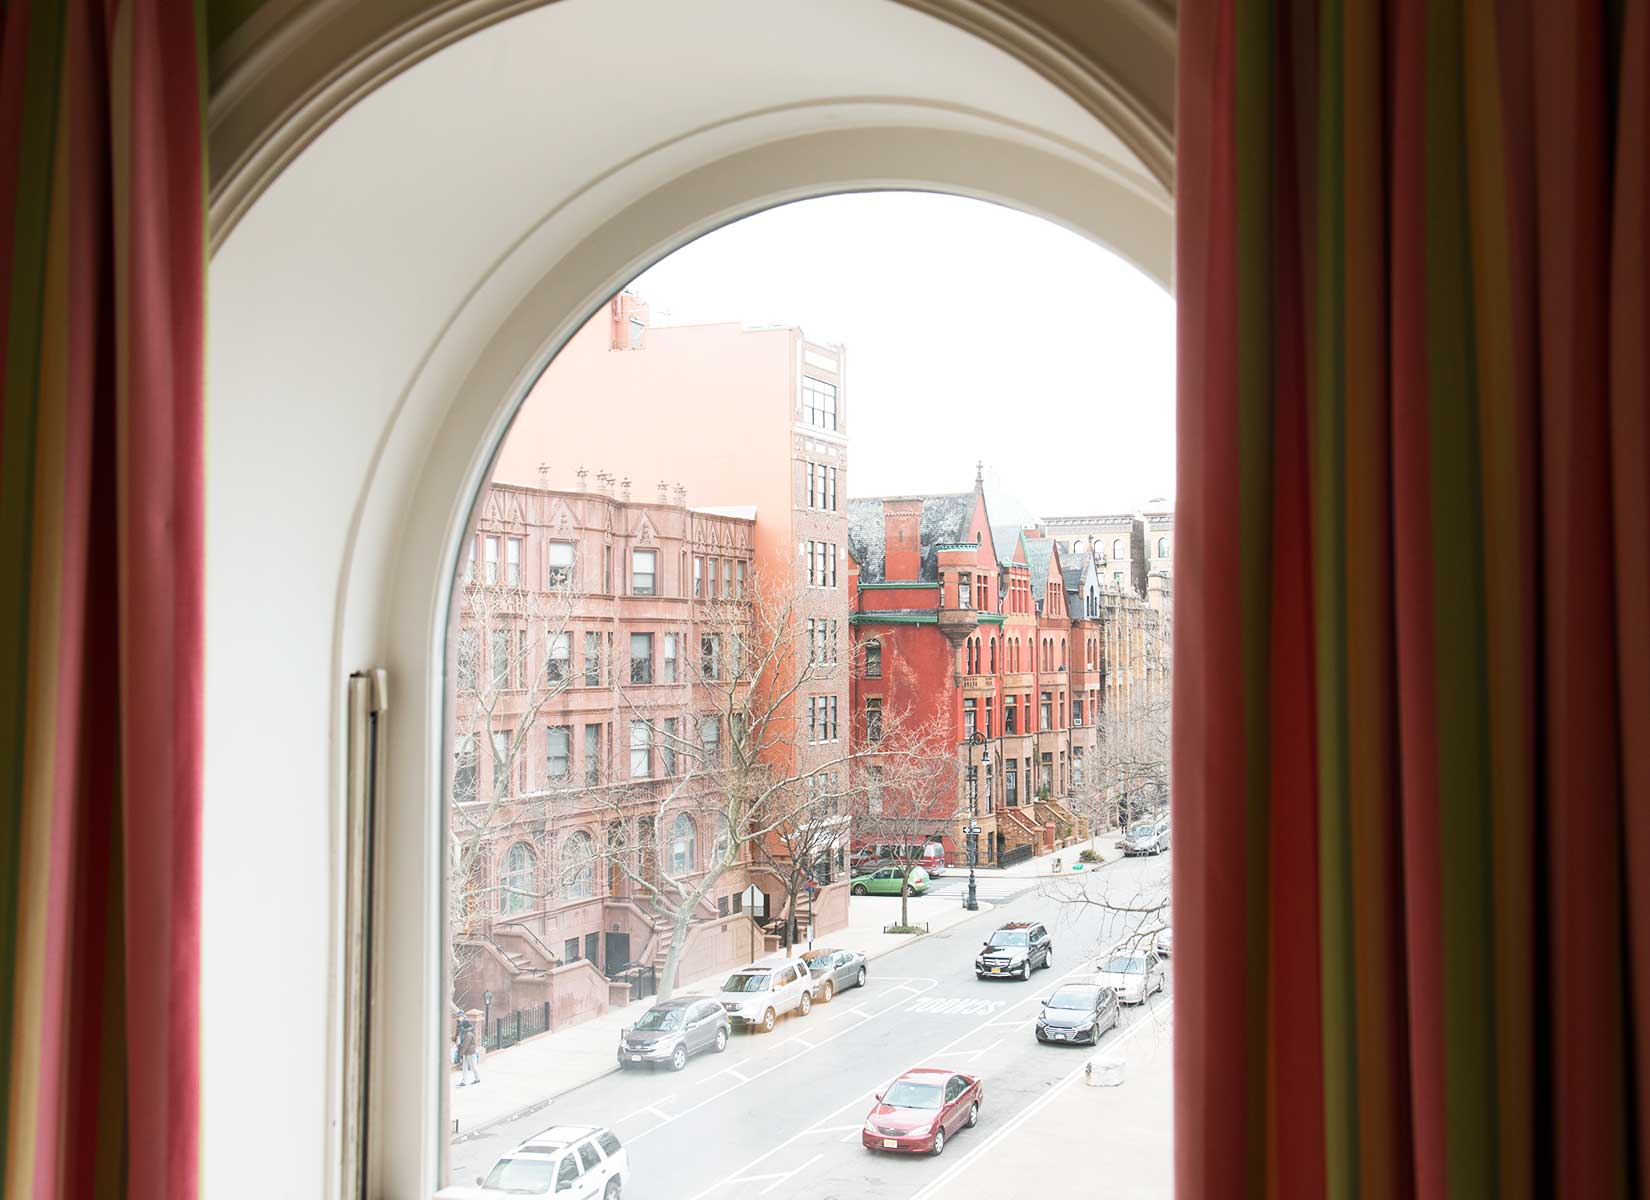 Across from Marcus Garvey Park and ideally situated in the Mount Morris Park Historic District, the residence is convenient to transit and Harlem's famed jazz and dining destinations, including Minton's Playhouse and Michelin-starred Sushi Inoue.